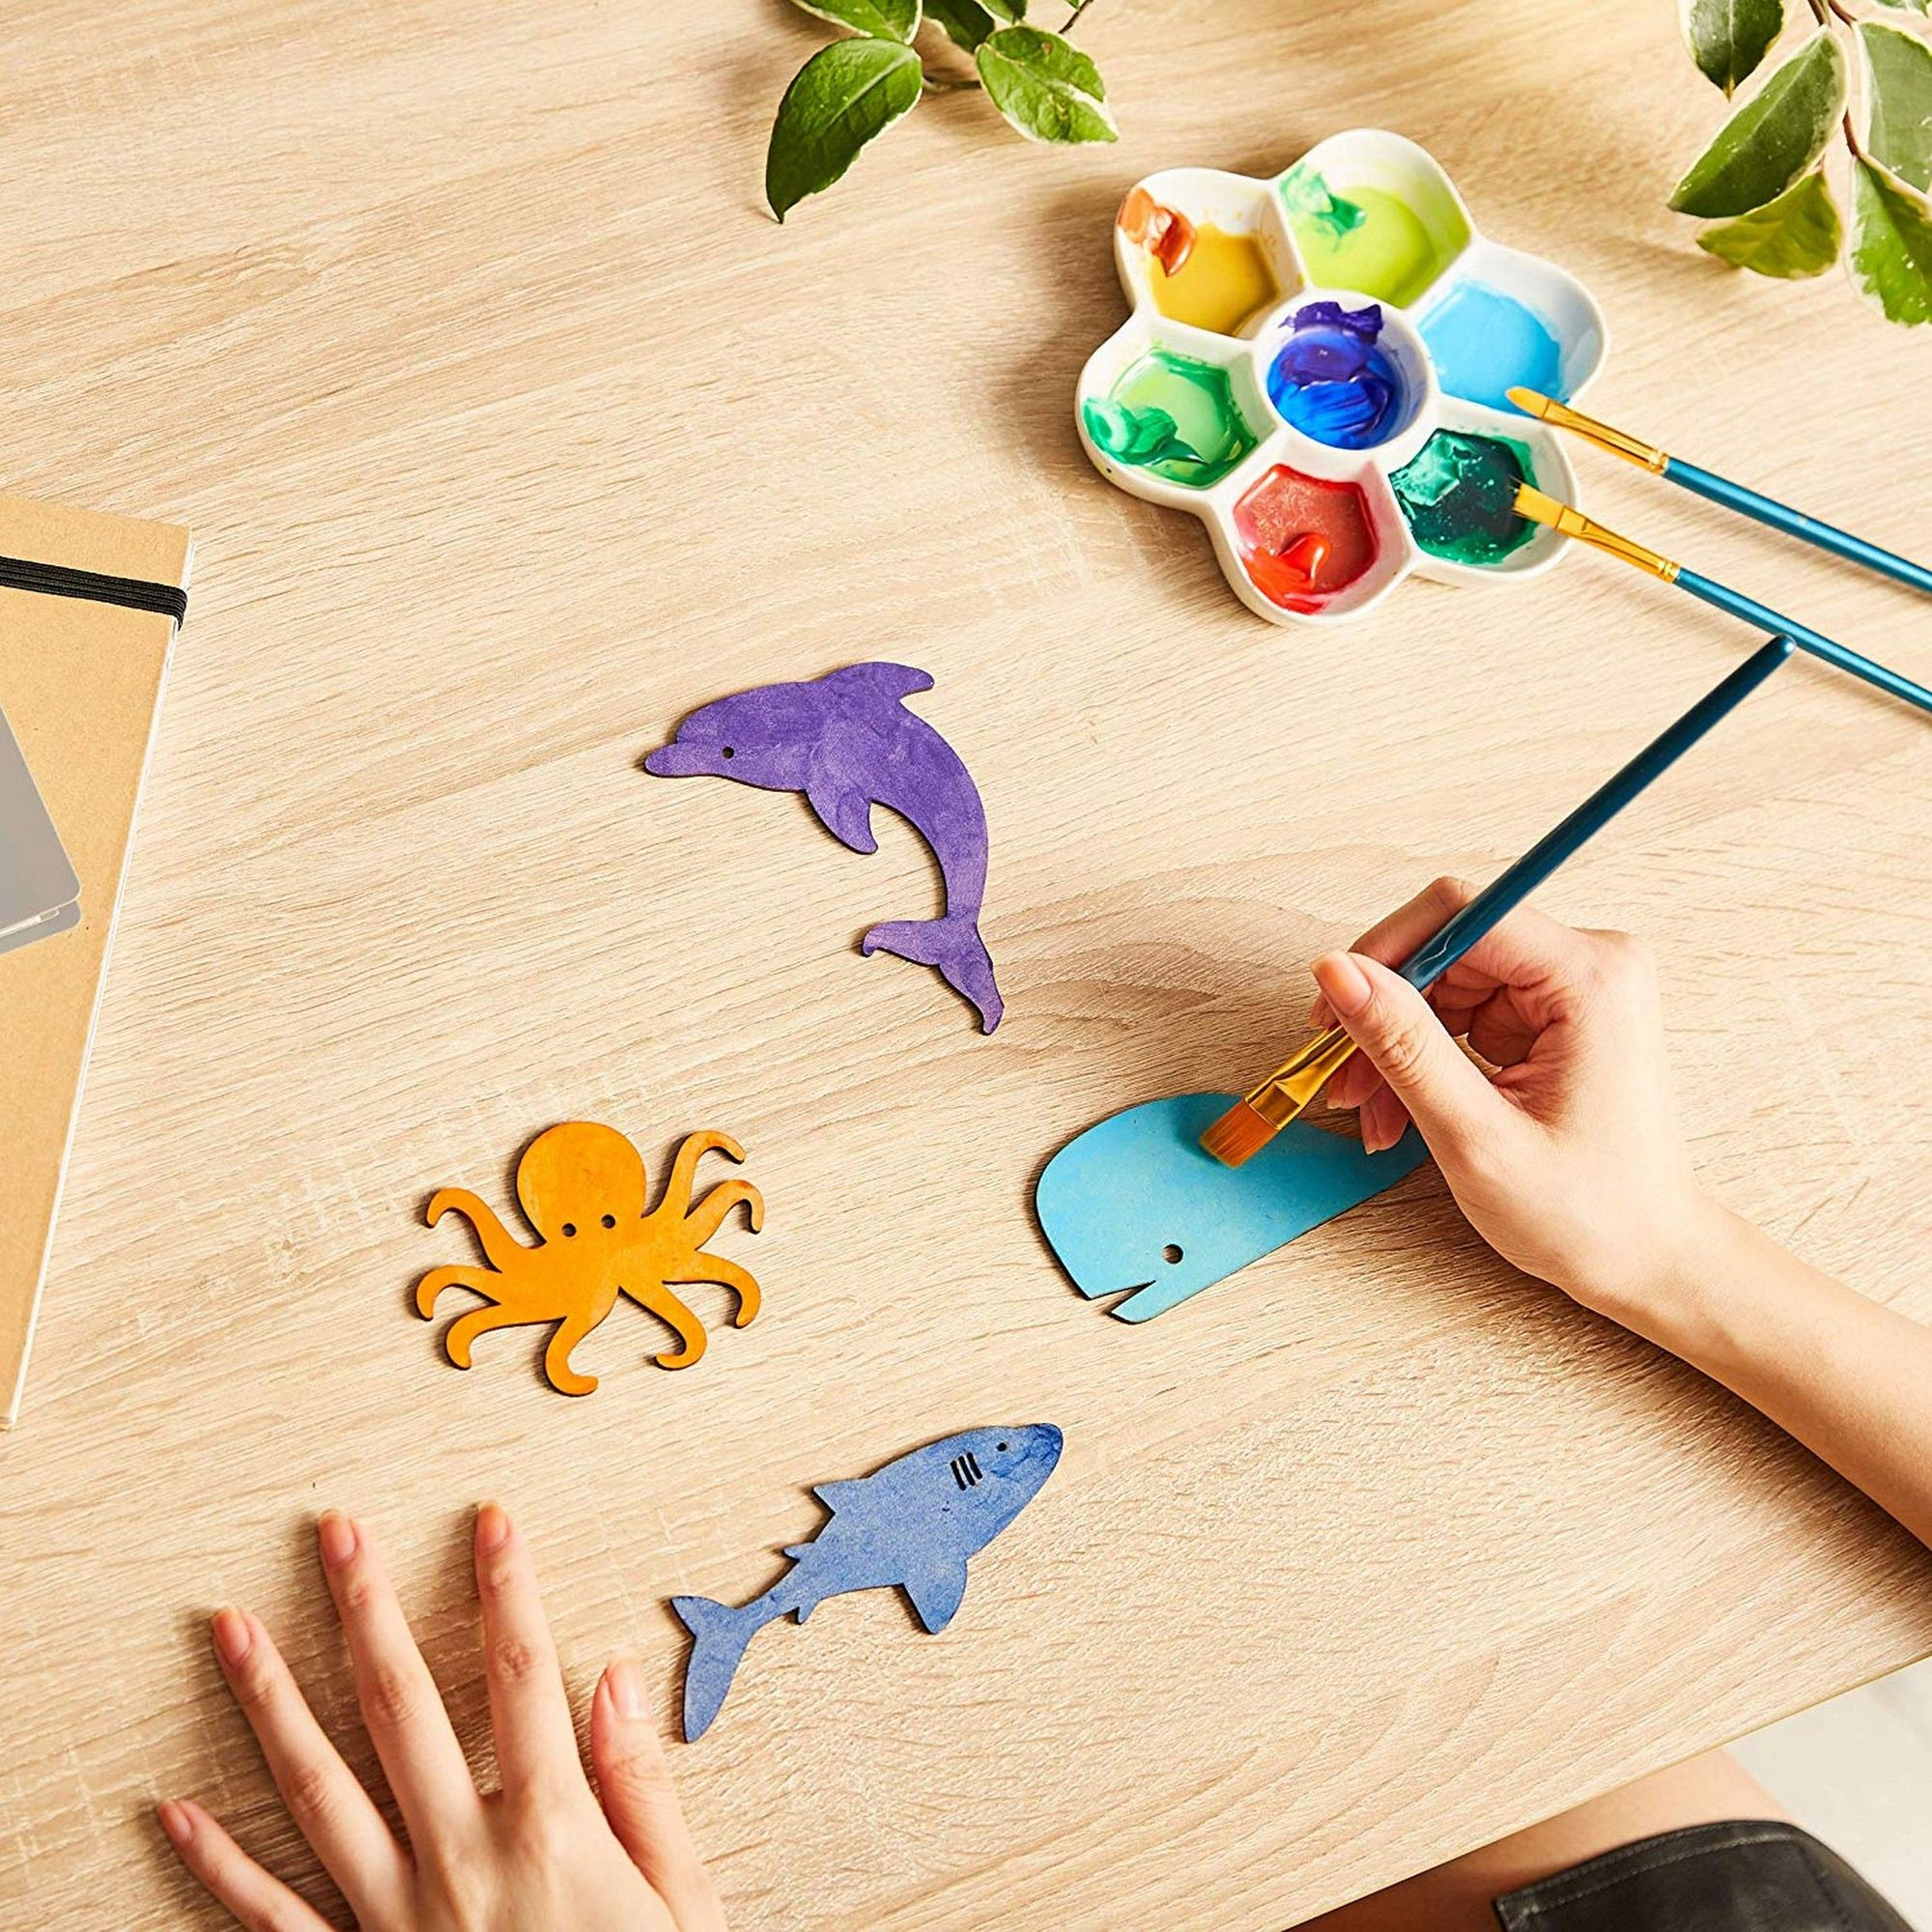 7cm Shape Art Projects Craft  Decoration Wood Fish Gift Decoupage Ornament Craft Supply Unpainted MG000912 Wooden Fish Skeleton